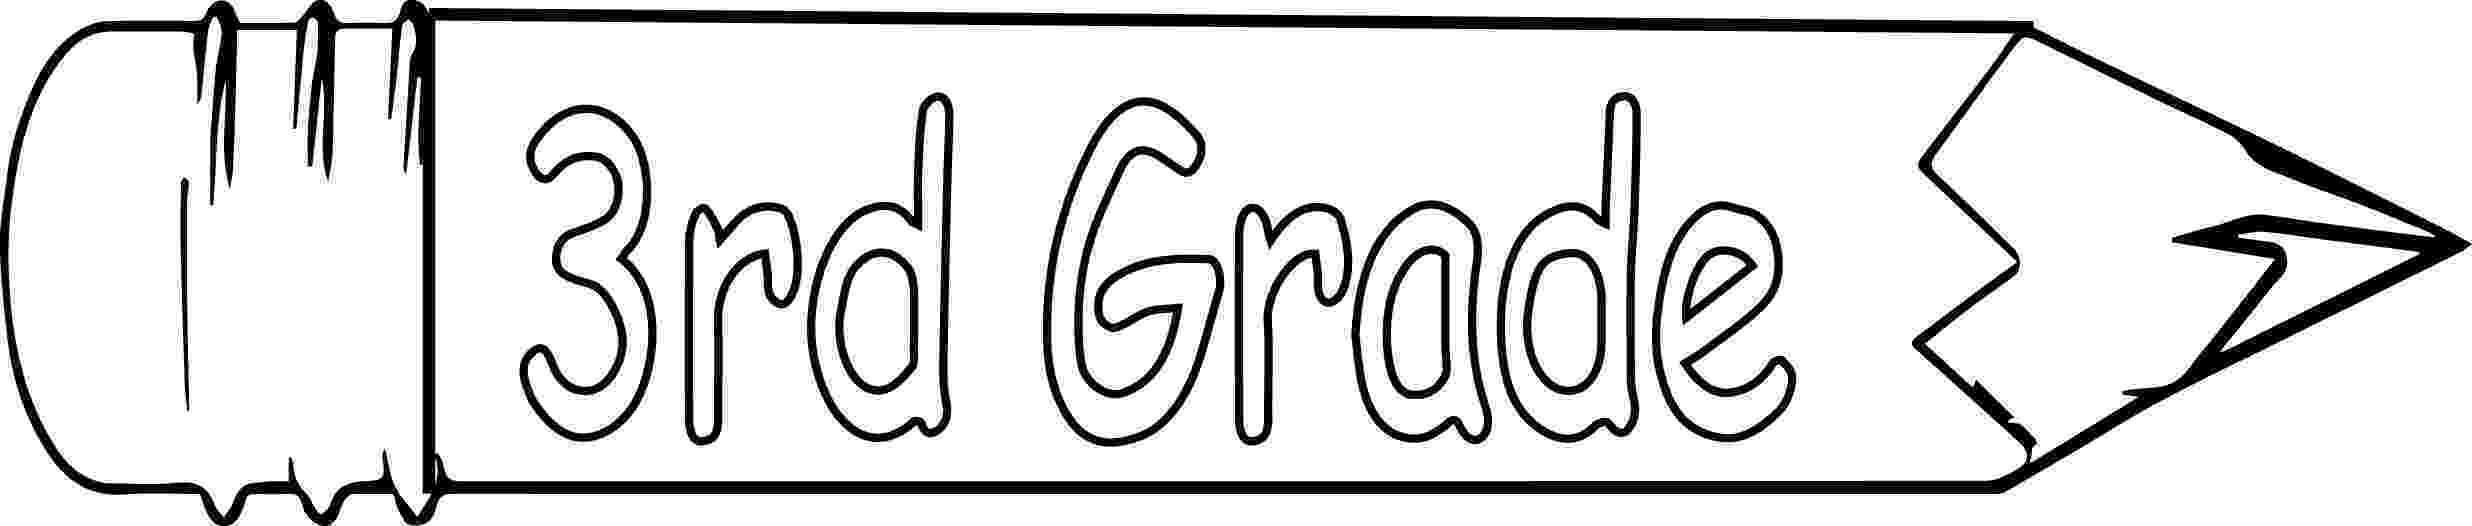 3rd grade coloring pages 3rd third grade pen coloring page wecoloringpagecom 3rd grade pages coloring